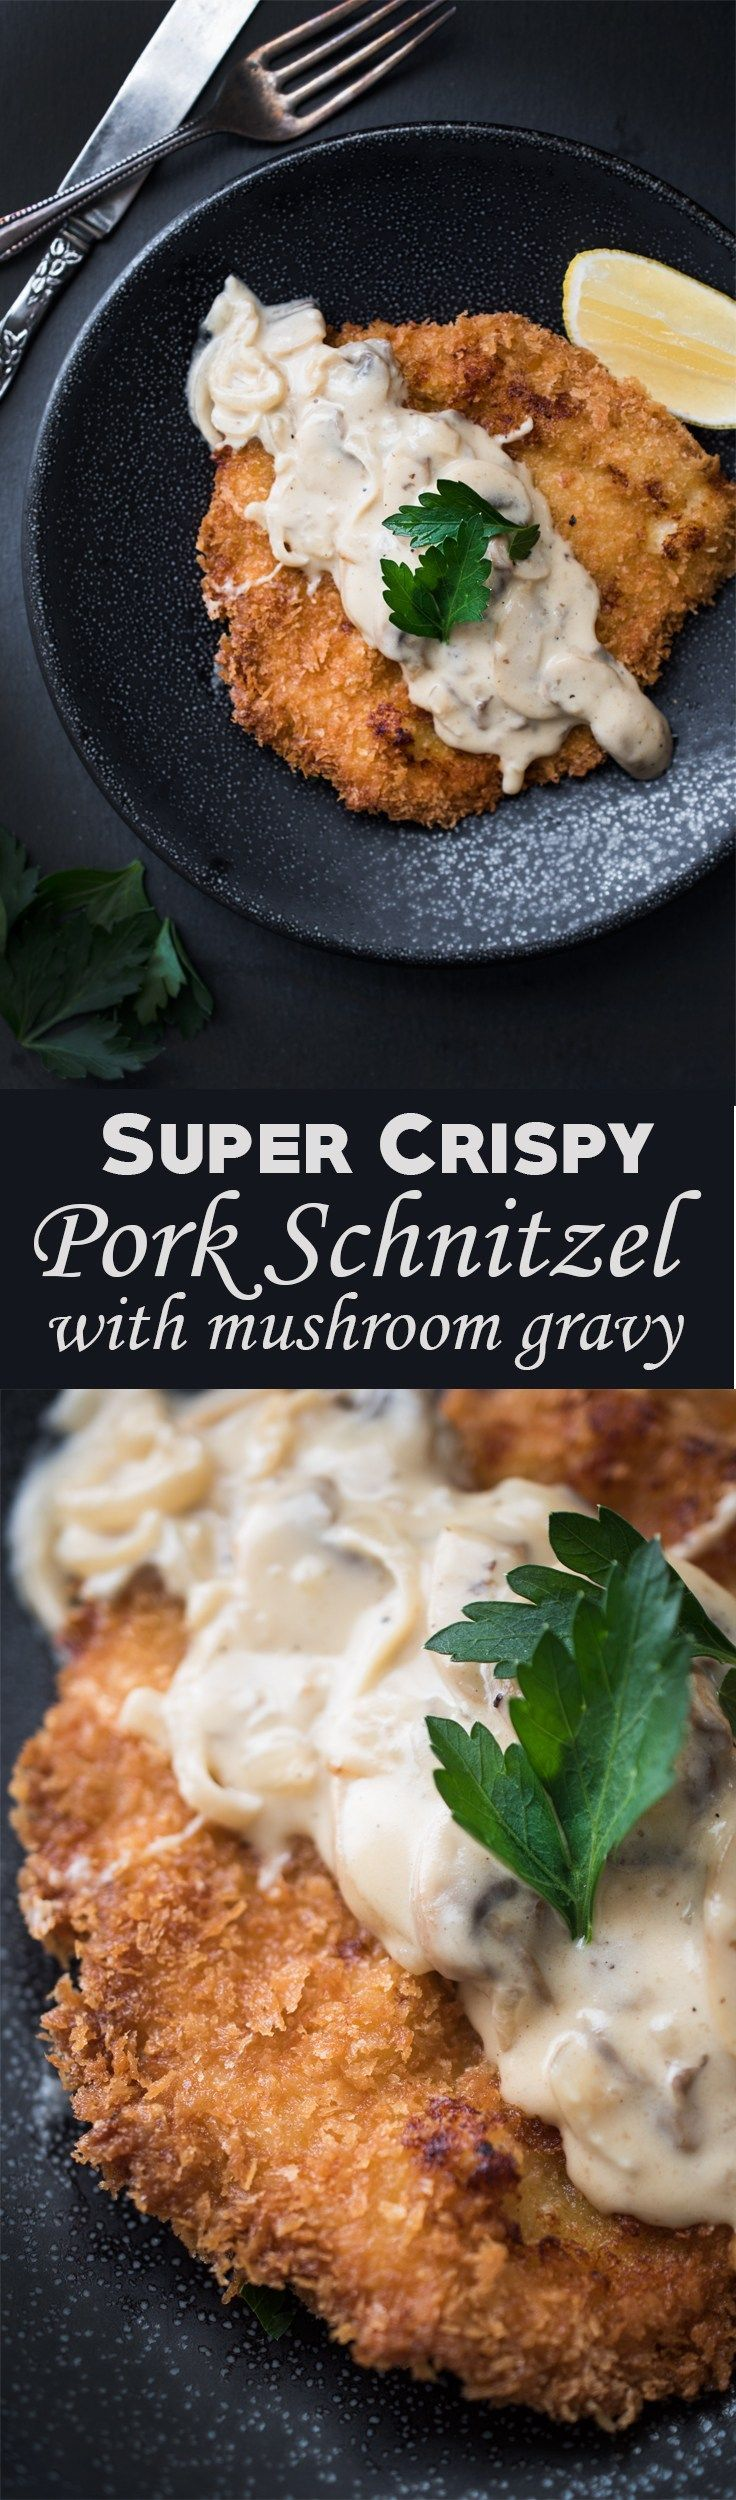 Pork Schnitzel with Mushroom Gravy - Battered, tender pork, fried until golden-brown and topped with a creamy mushroom gravy!